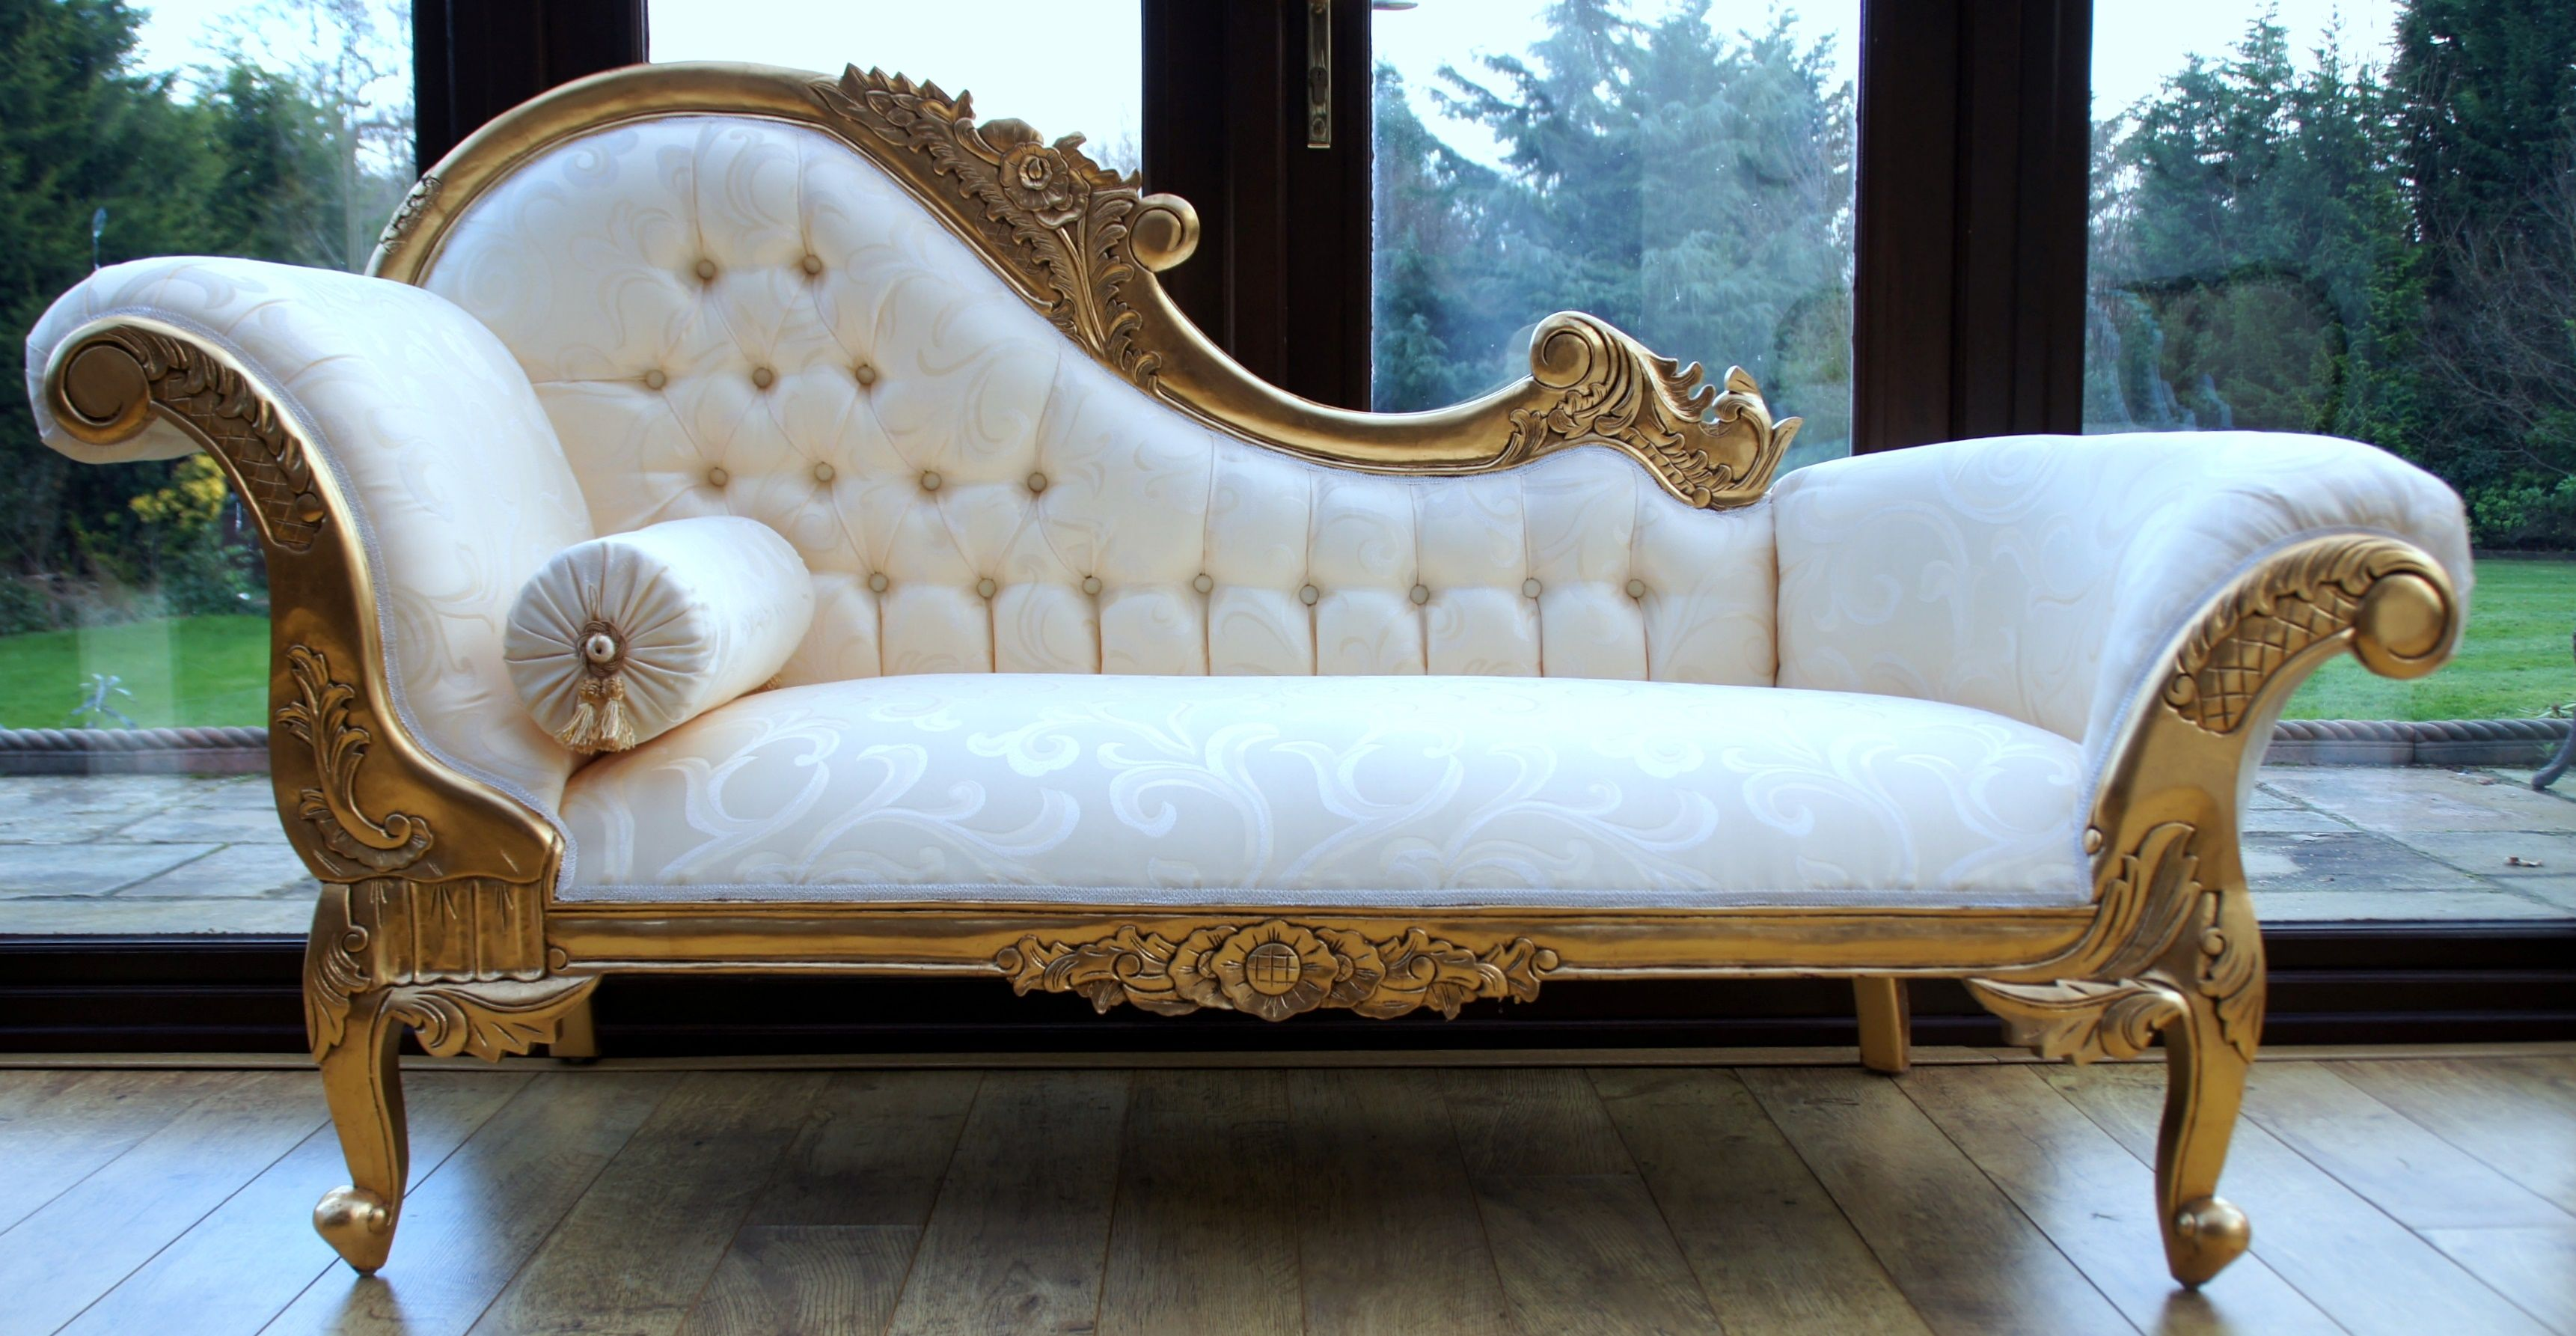 The Gilded Age Antique Carved Furniture Apartment